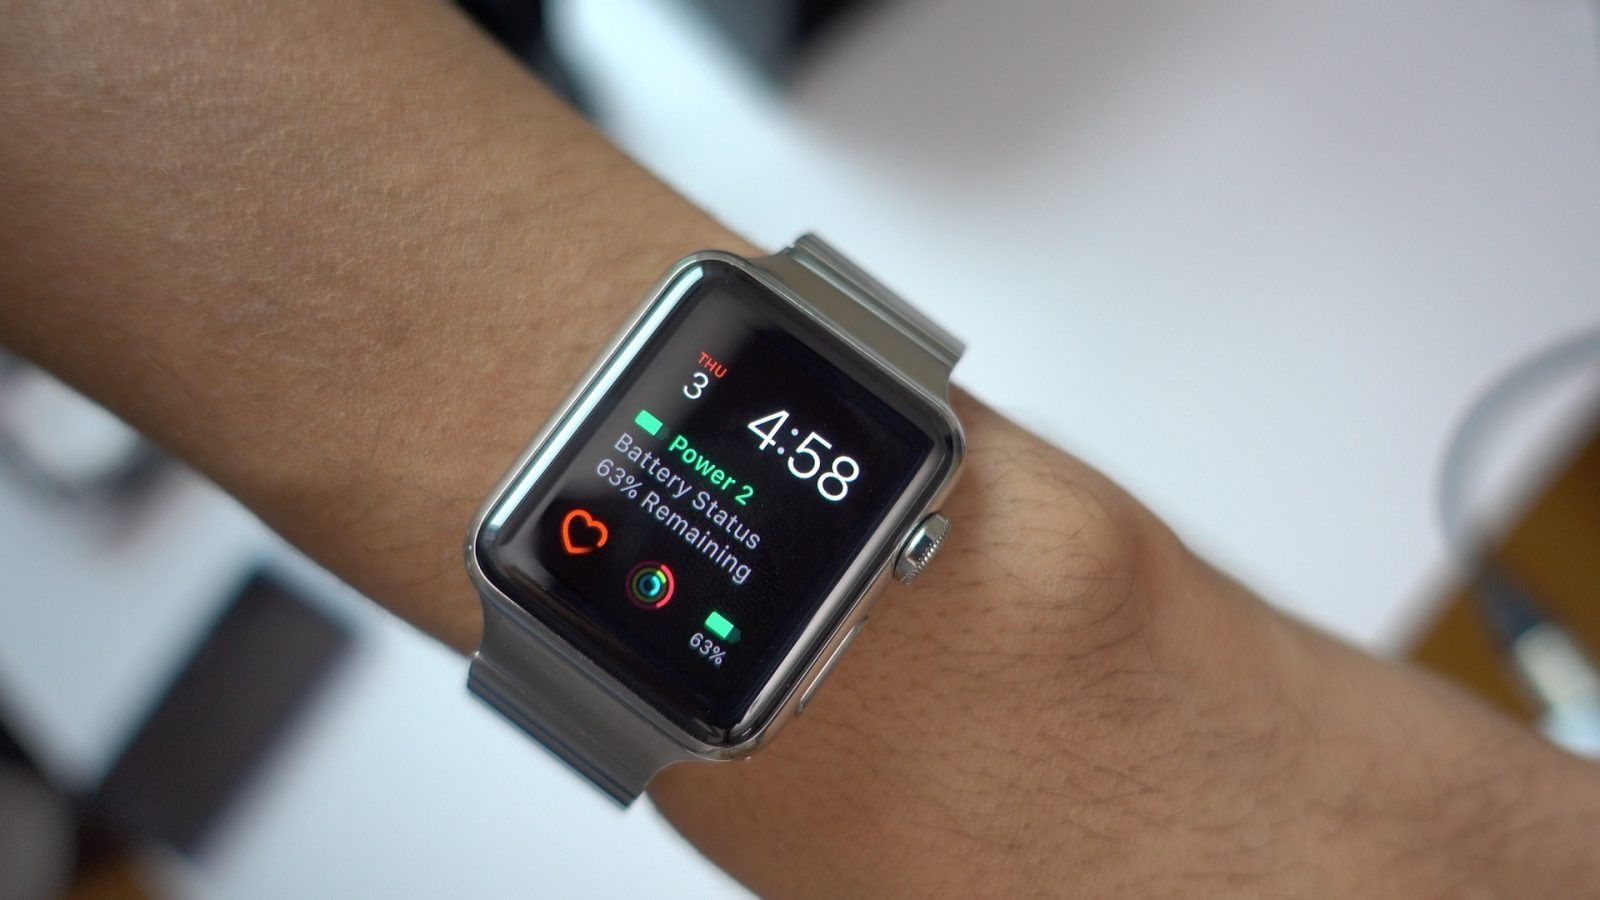 Watch face with several complications: calendar, battery (main complication), heart app, activity, and again battery